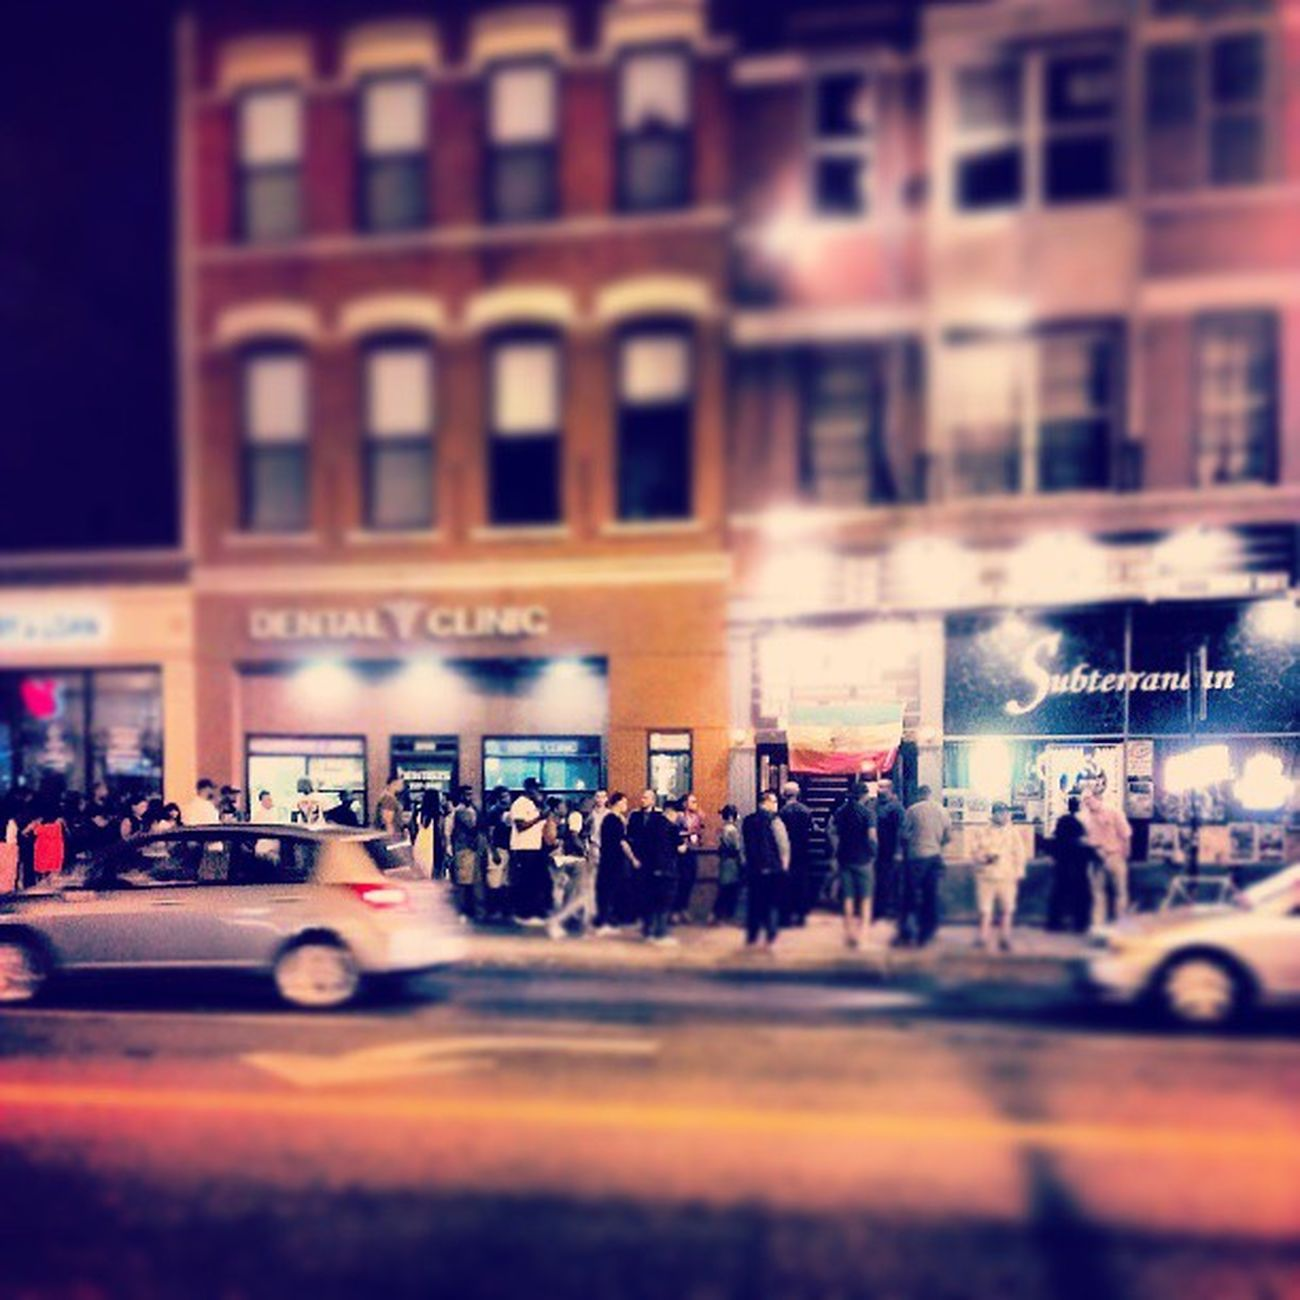 Line all the way down the block Everythursday Reggaegold Subt Djpapag Chicago ifyadontknownowyaknow